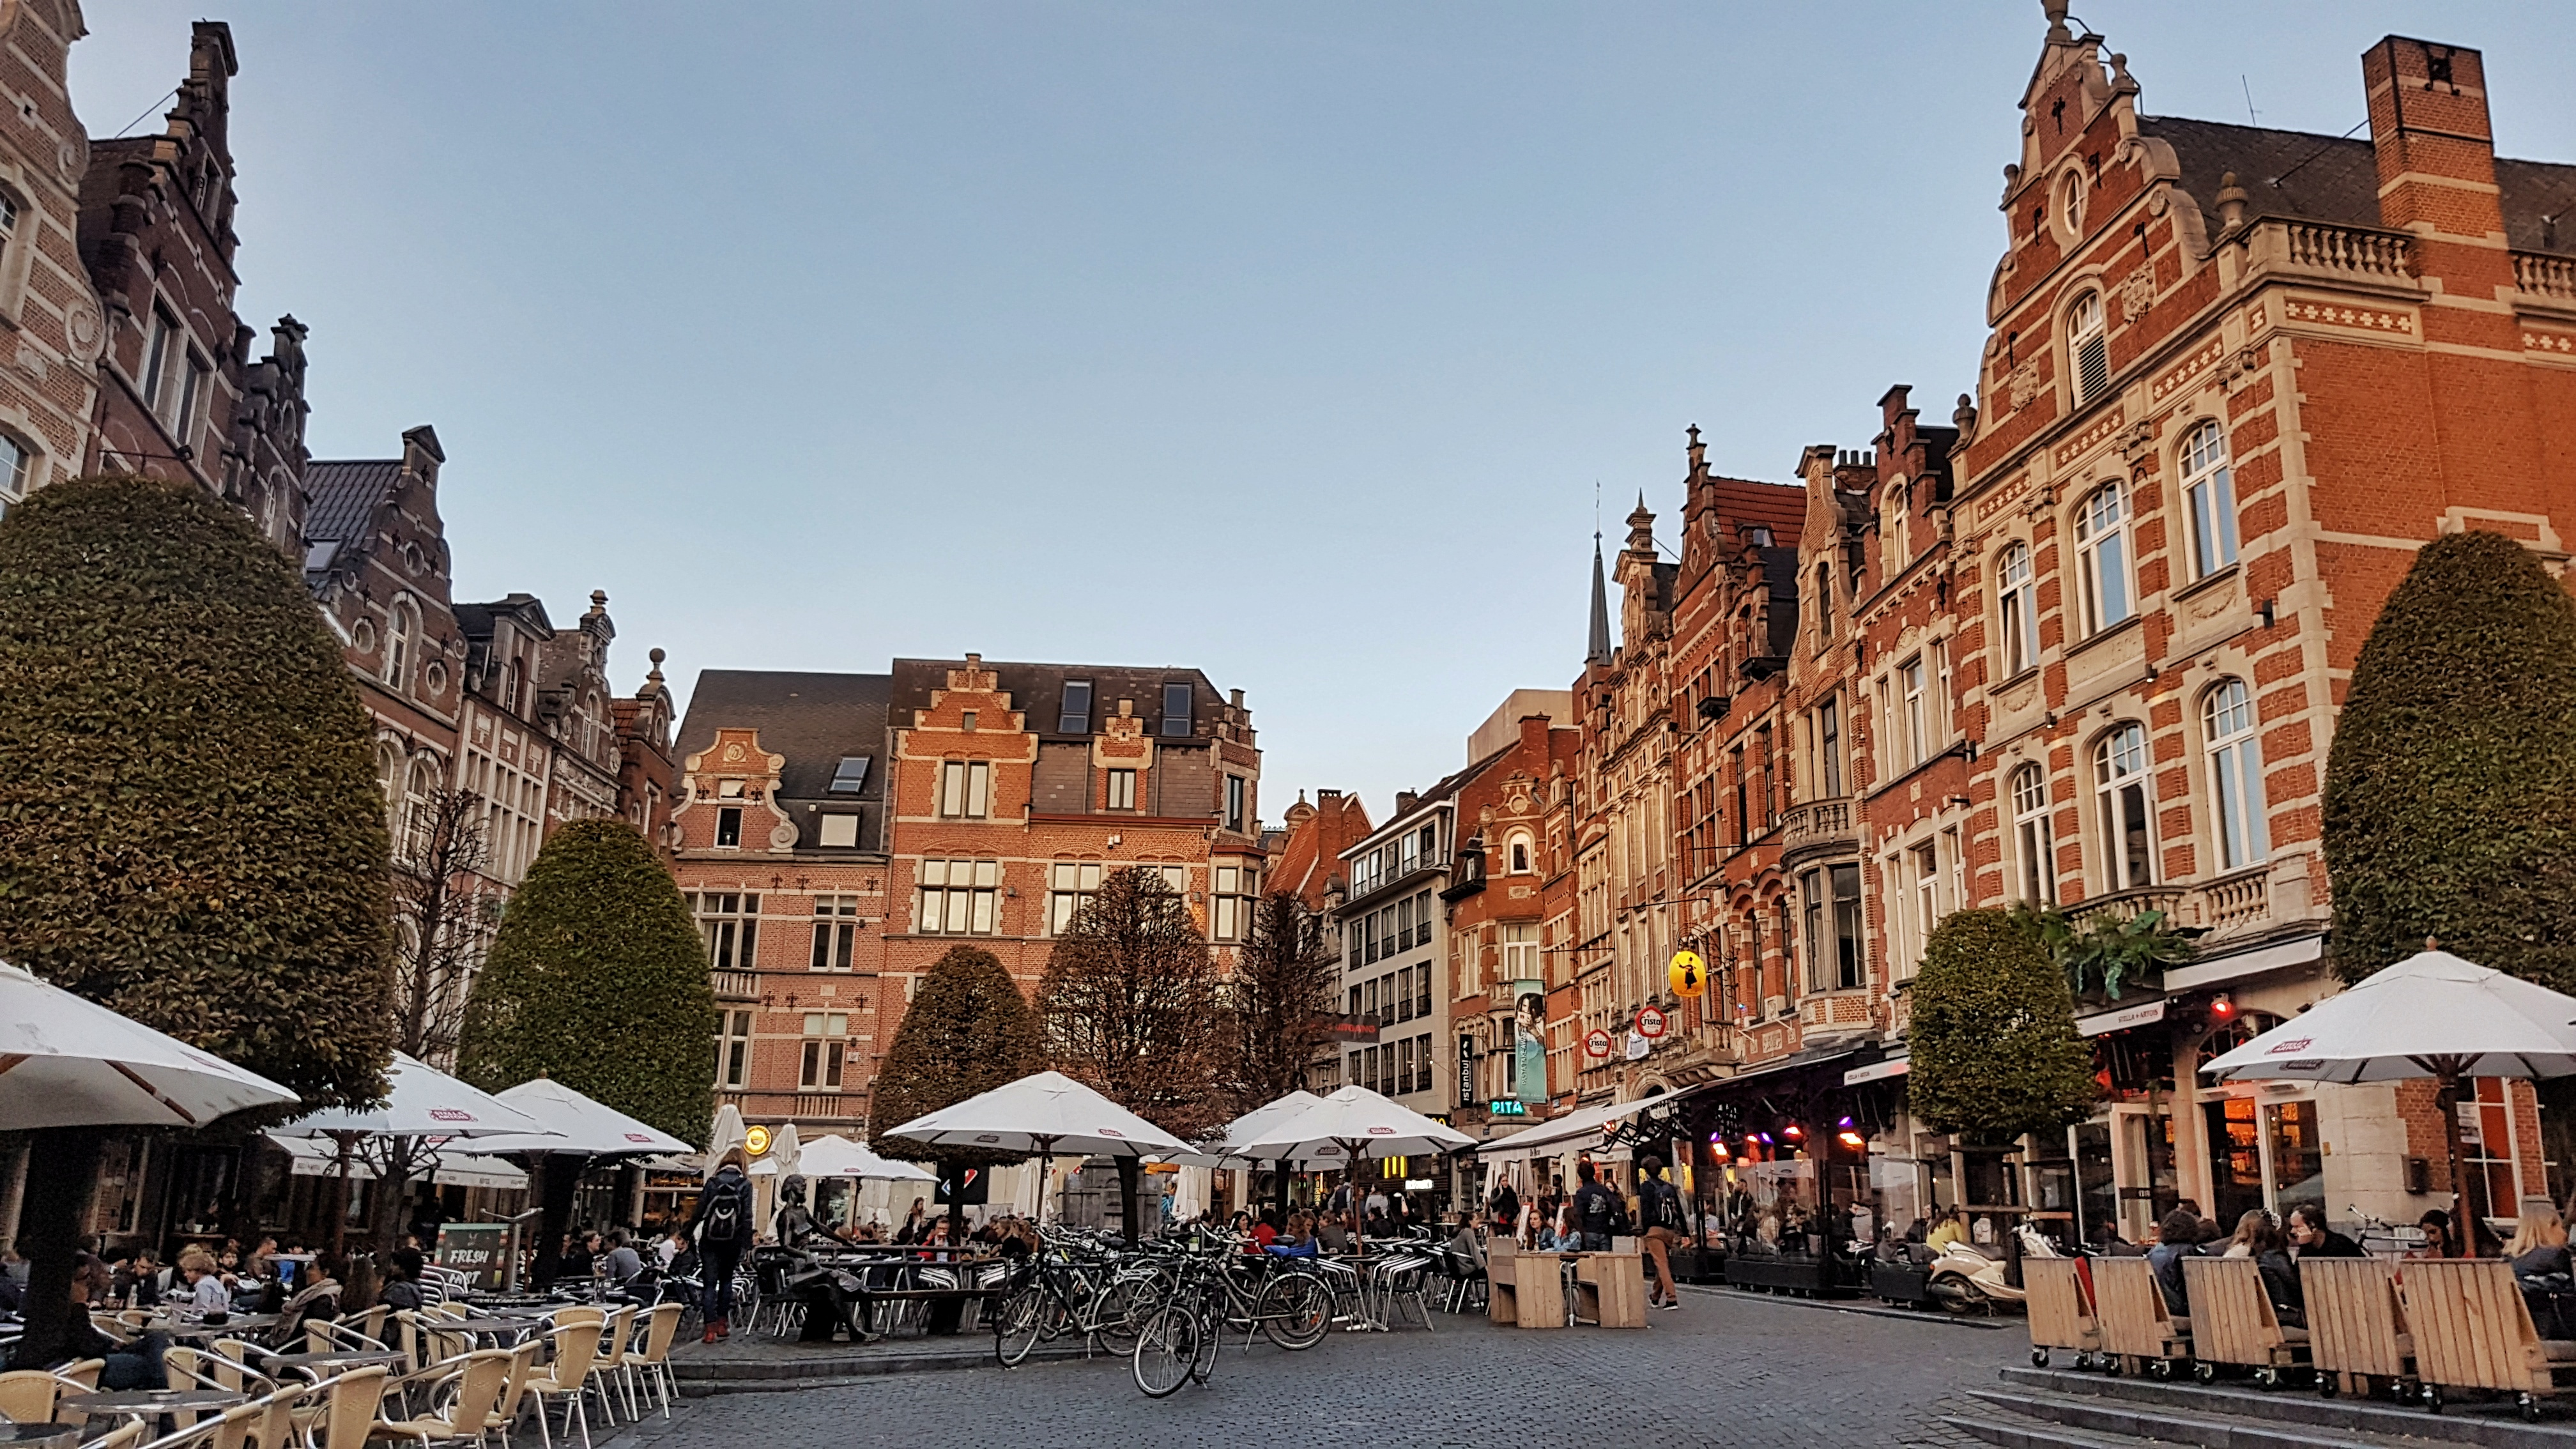 Europe Longest bar Leuven called the Oude Markt, read more about what you can do in Leuven in 48 hours at www.whatsupcourtney.com #Leuven #travel #travelguide